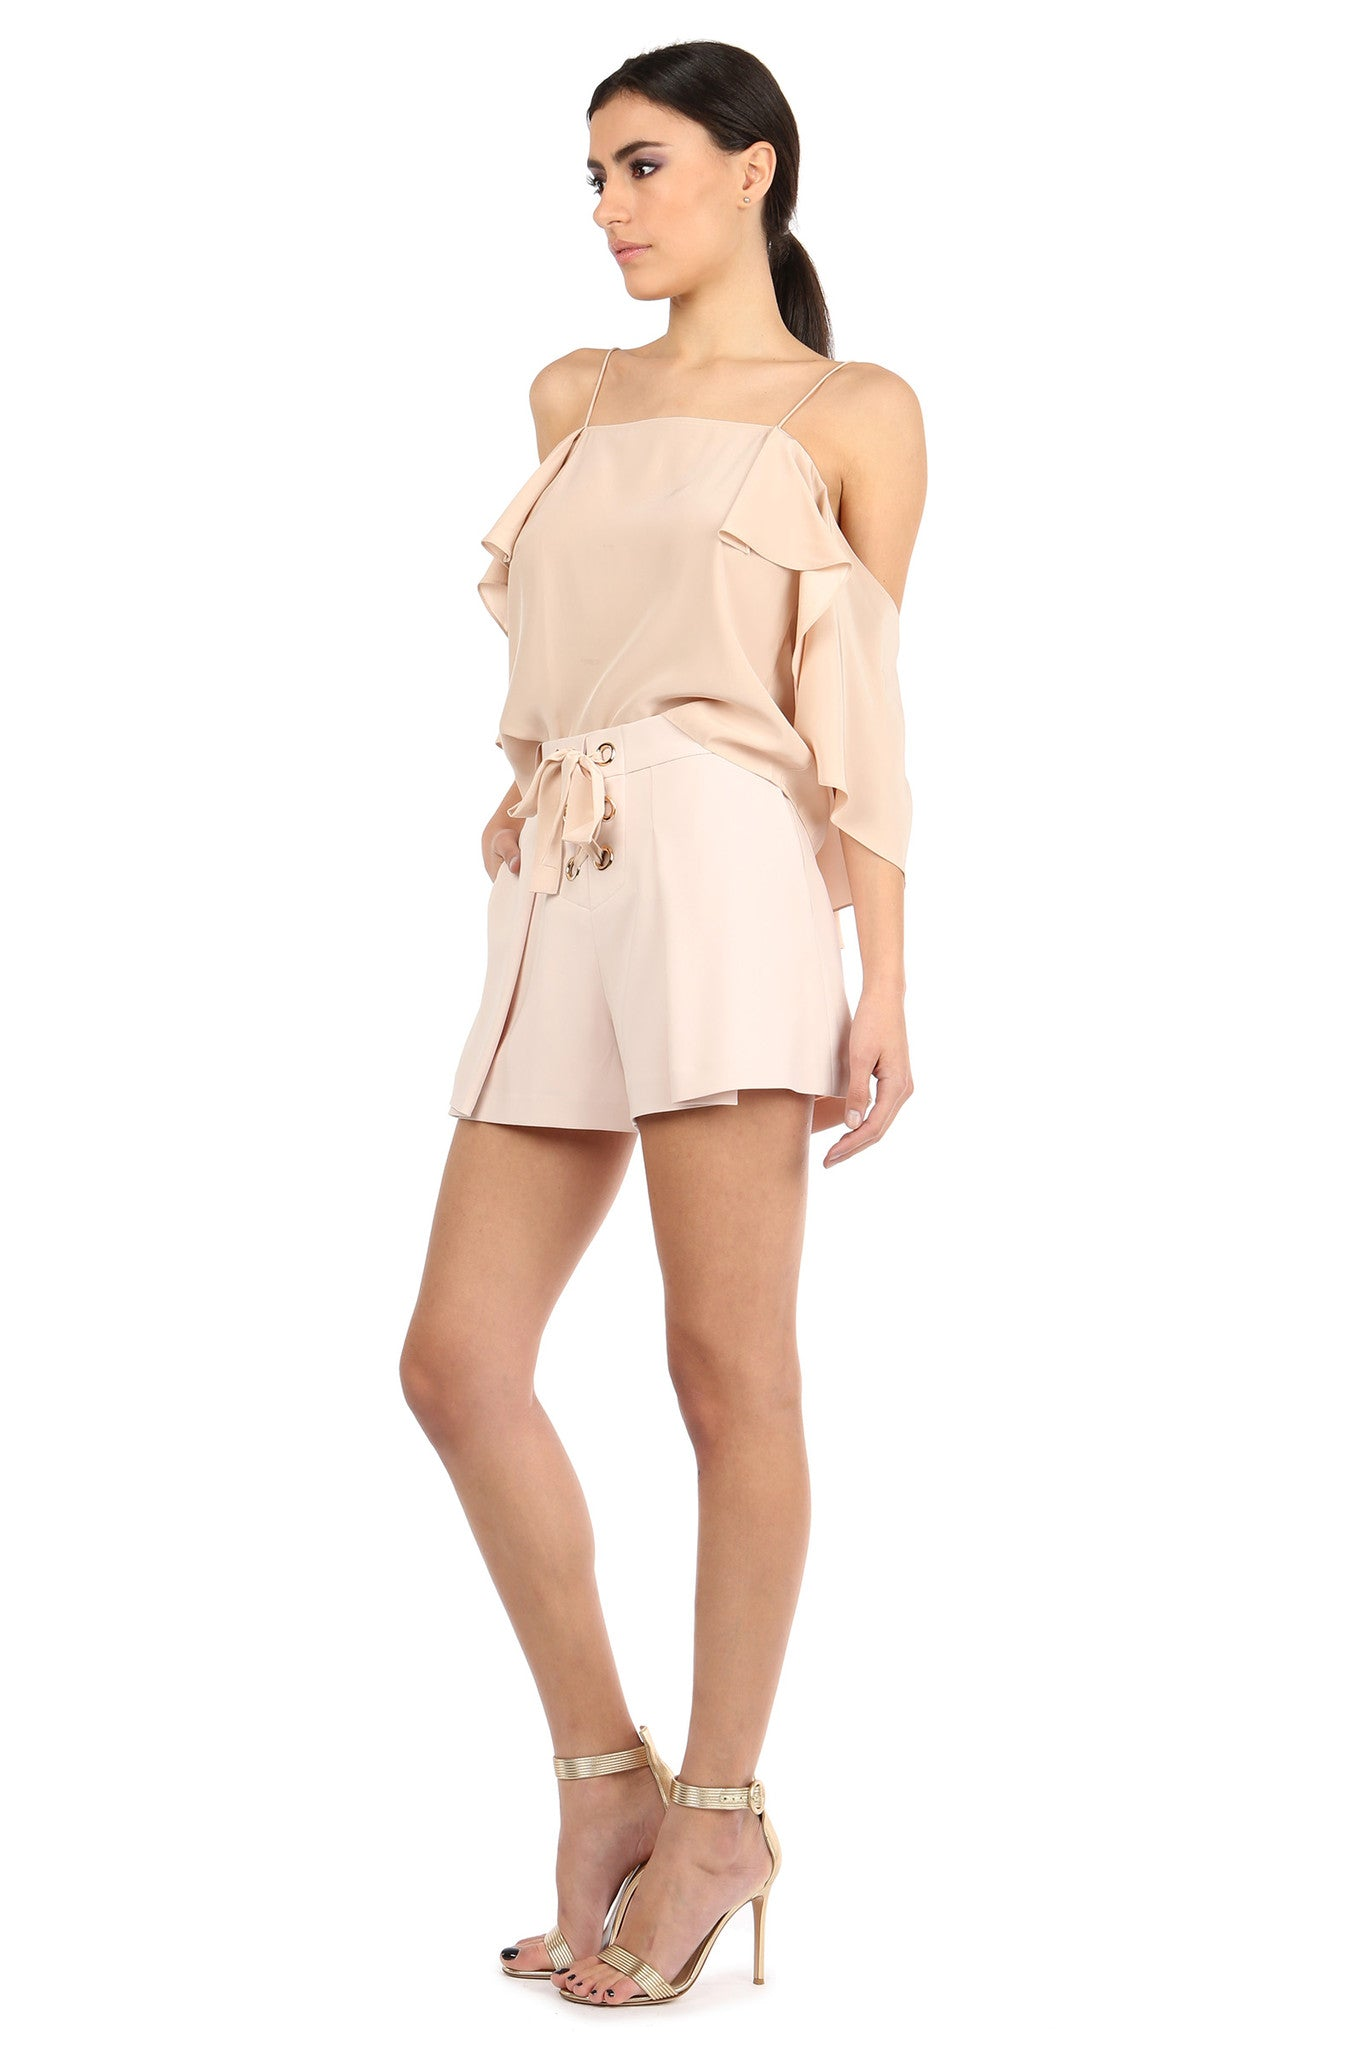 Jay Godfrey Sand Pleated Shorts - Side View